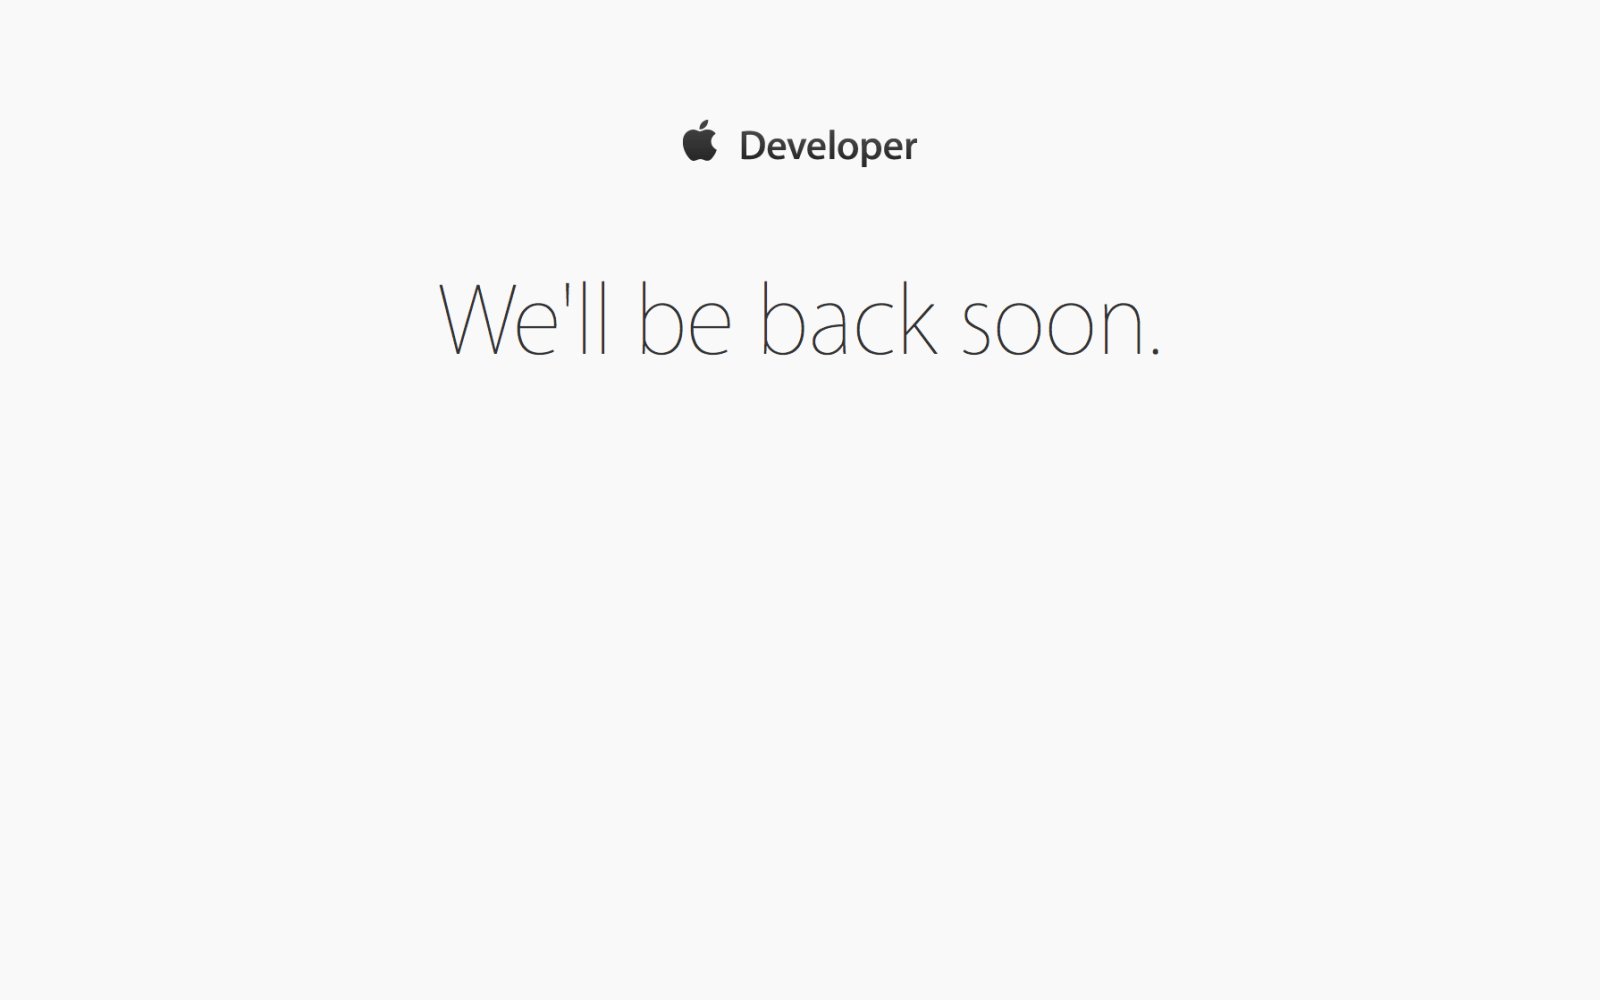 Apple Developer Portal and Beta Software Program pages goes down ahead of WWDC keynote